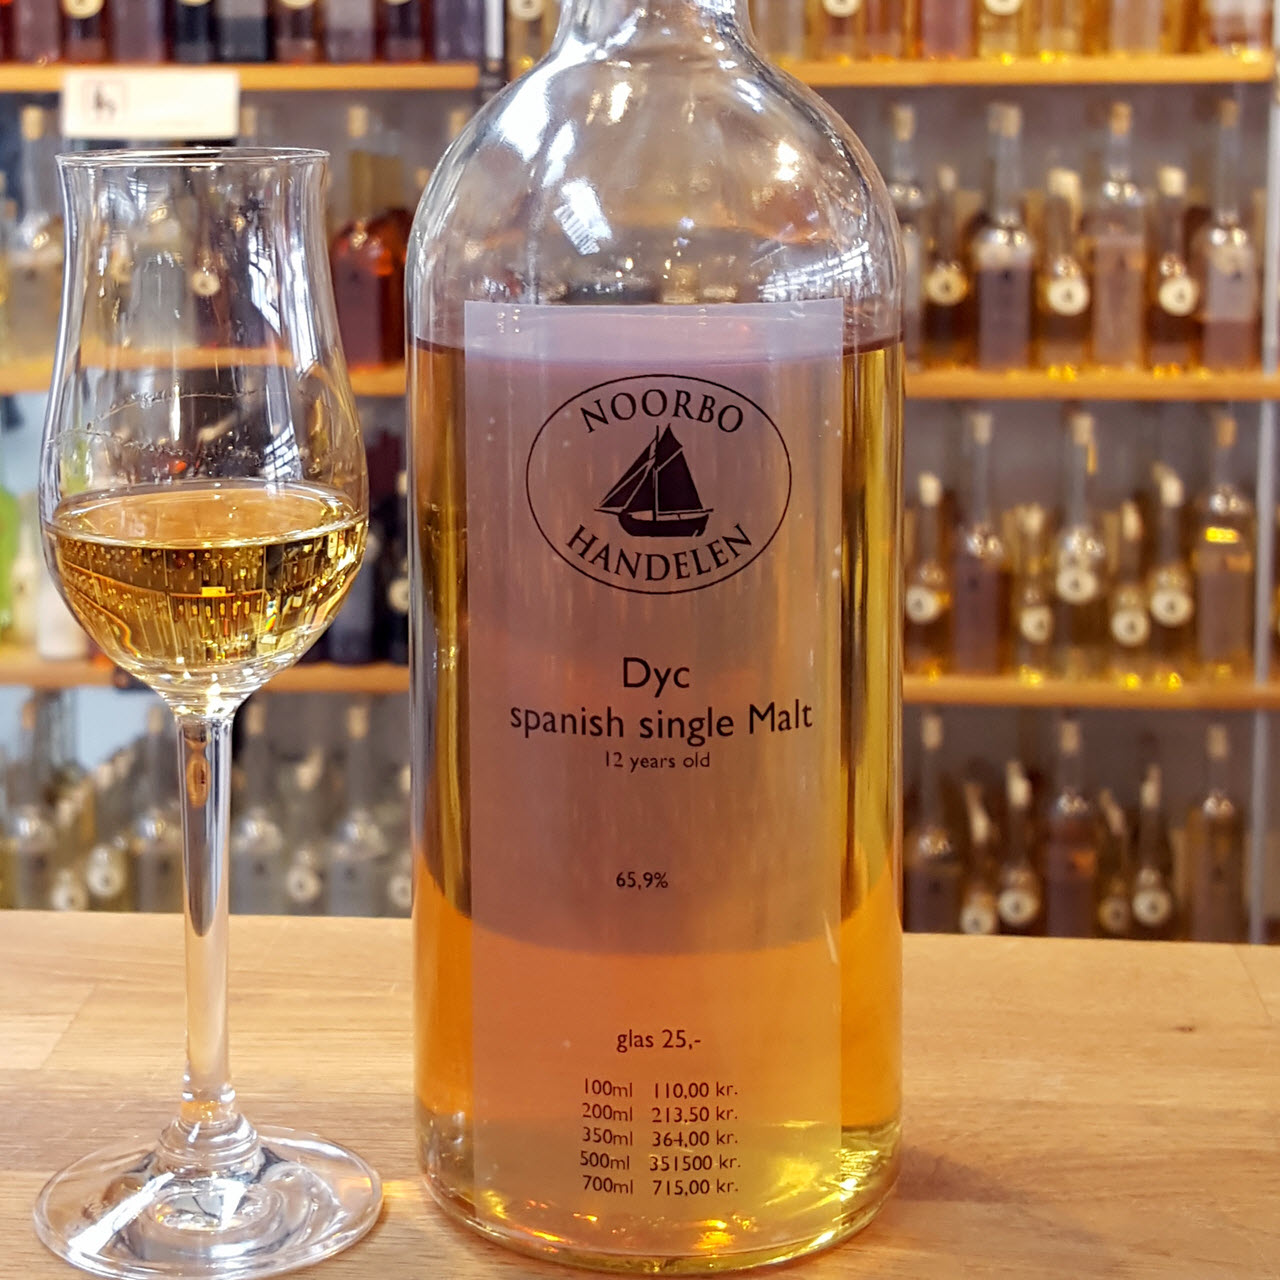 DYC 12 YO Spanish single malt whisky